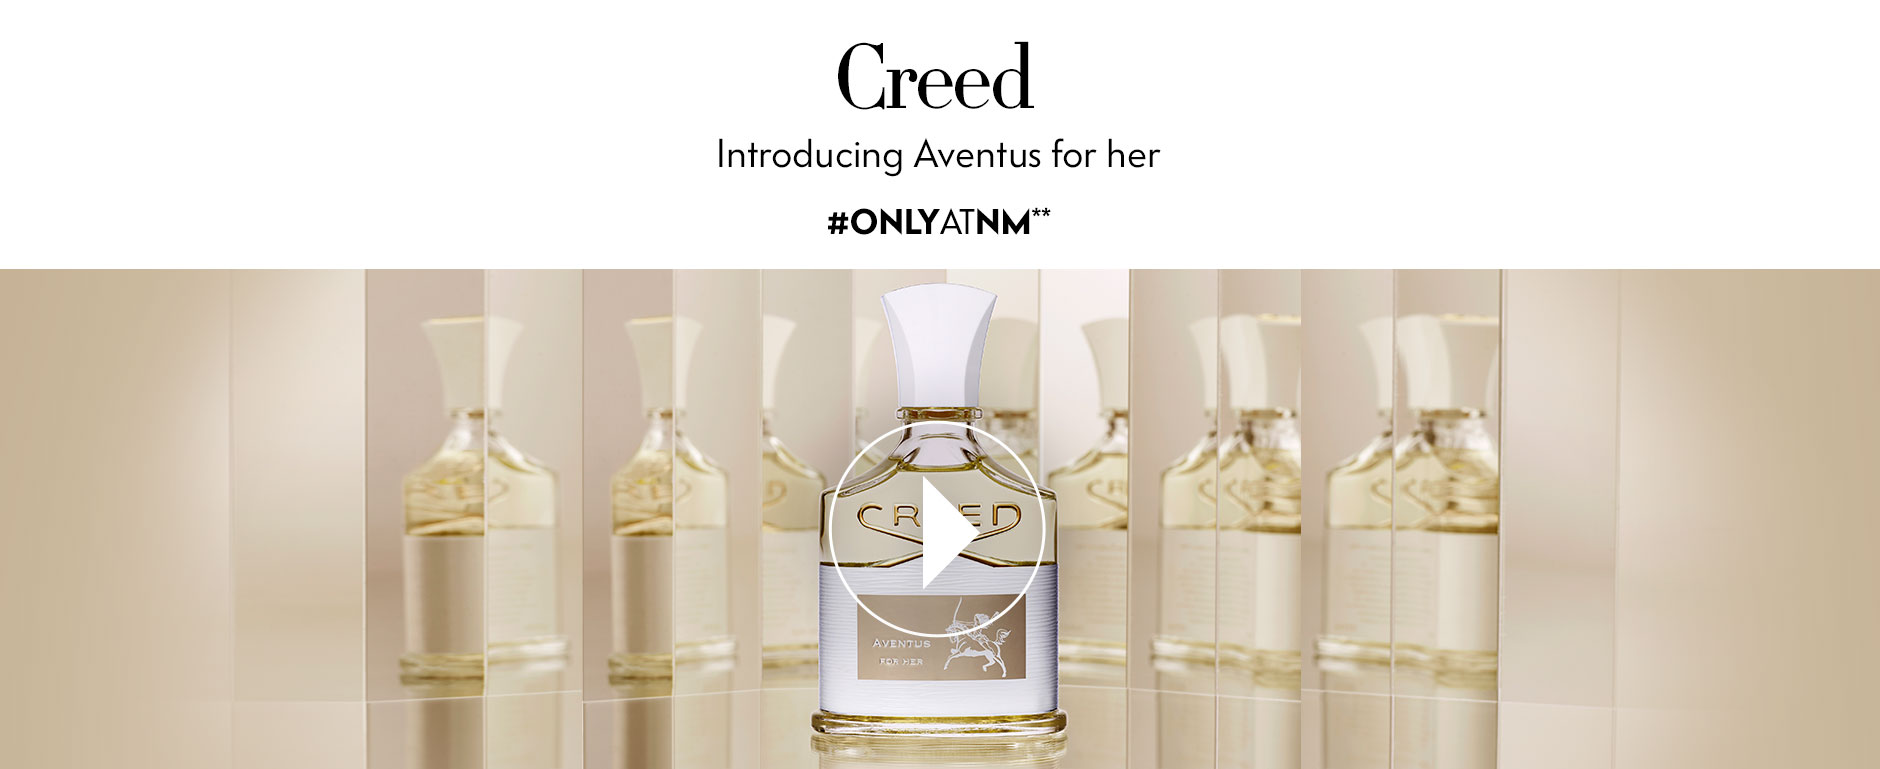 Creed: Introducing Aventus for her - #ONLYATNM